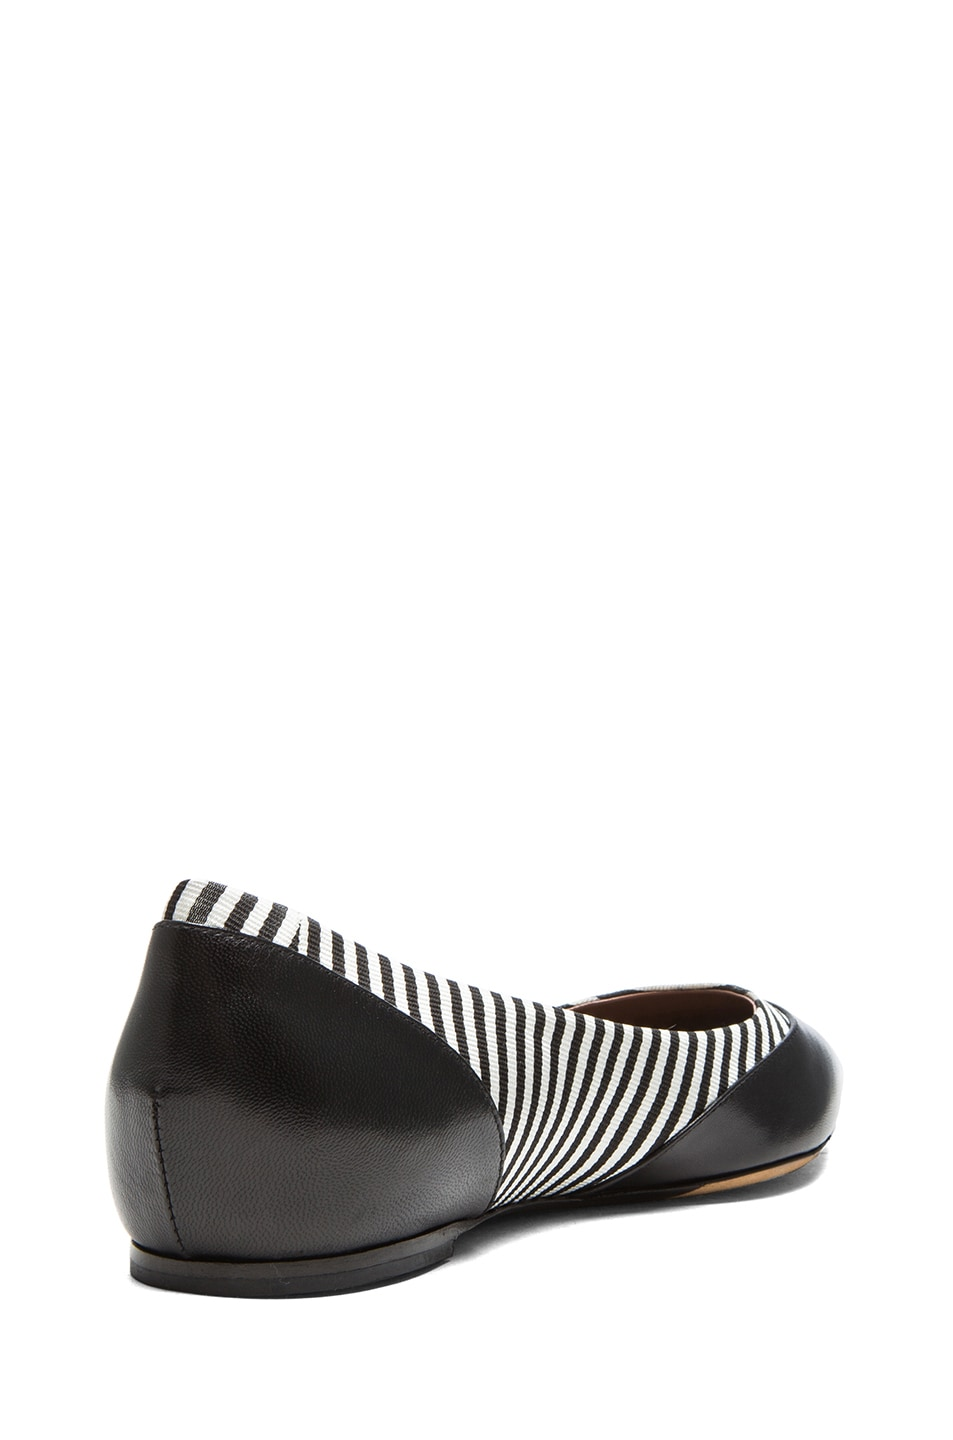 Image 3 of Tabitha Simmons Leith Grossgrain Fabric & Leather Flats in Black & Shirt Stripe